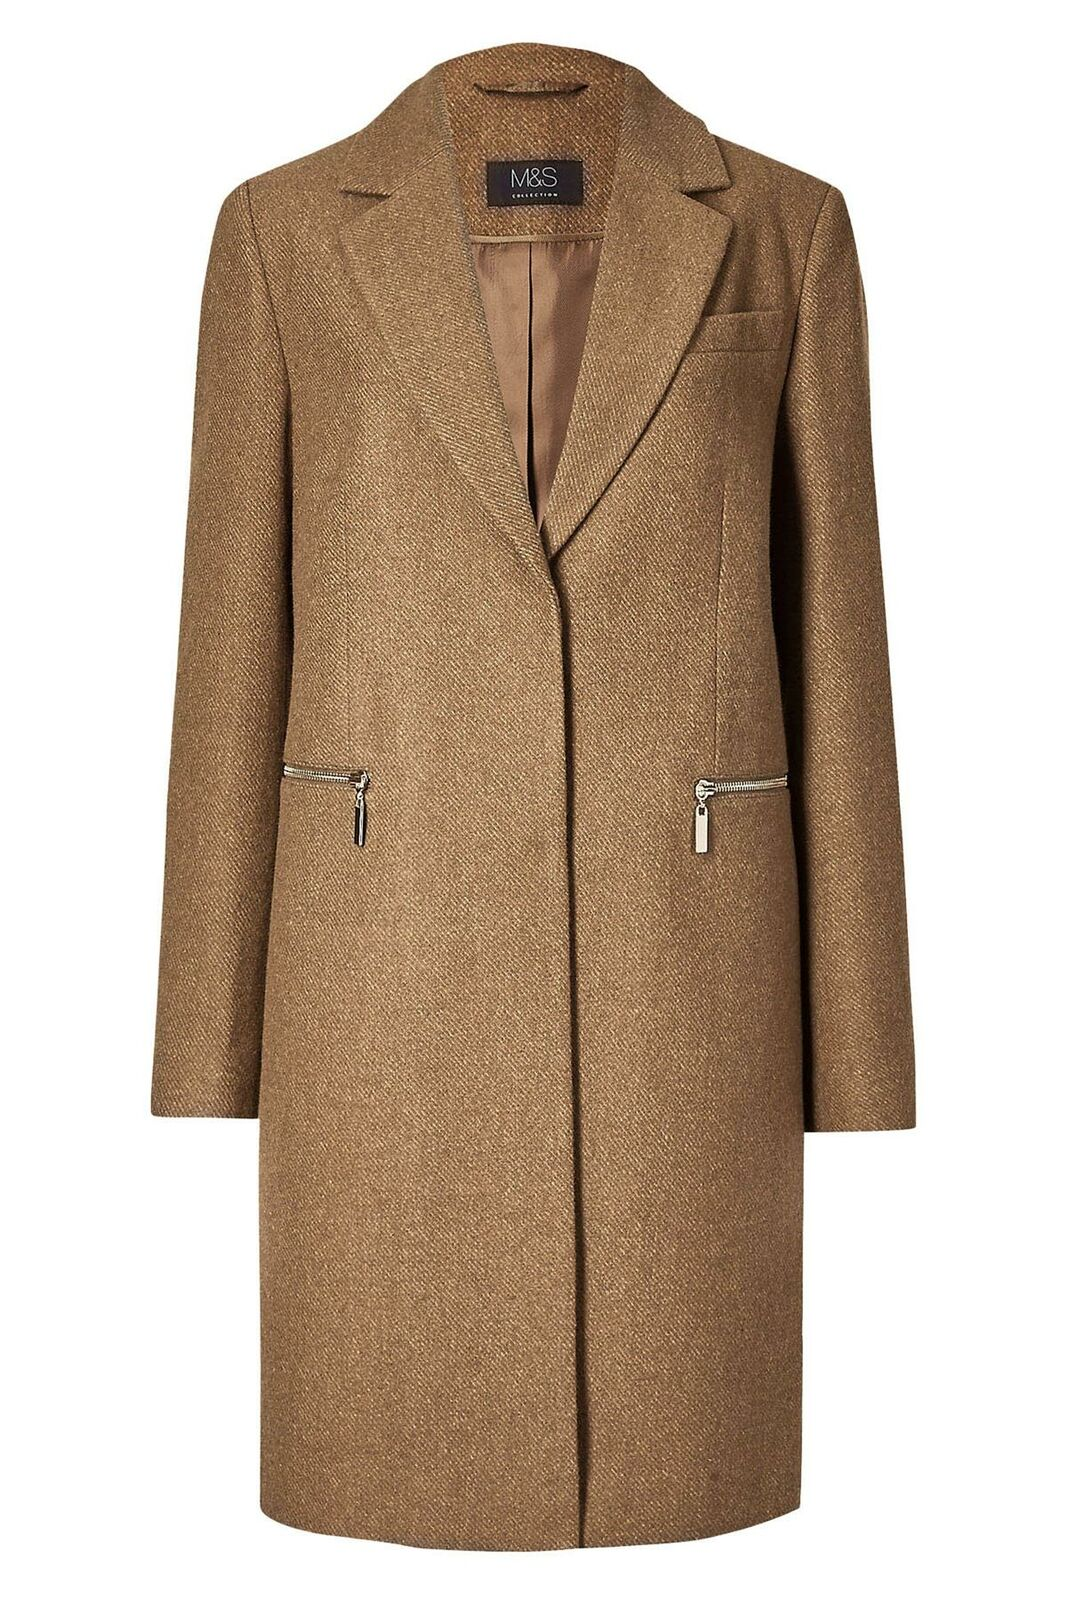 M-amp-S-Wool-Blend-Single-Breasted-Pink-Brown-Winter-Coat-Holly-Willoughby-Size-6-24 thumbnail 16